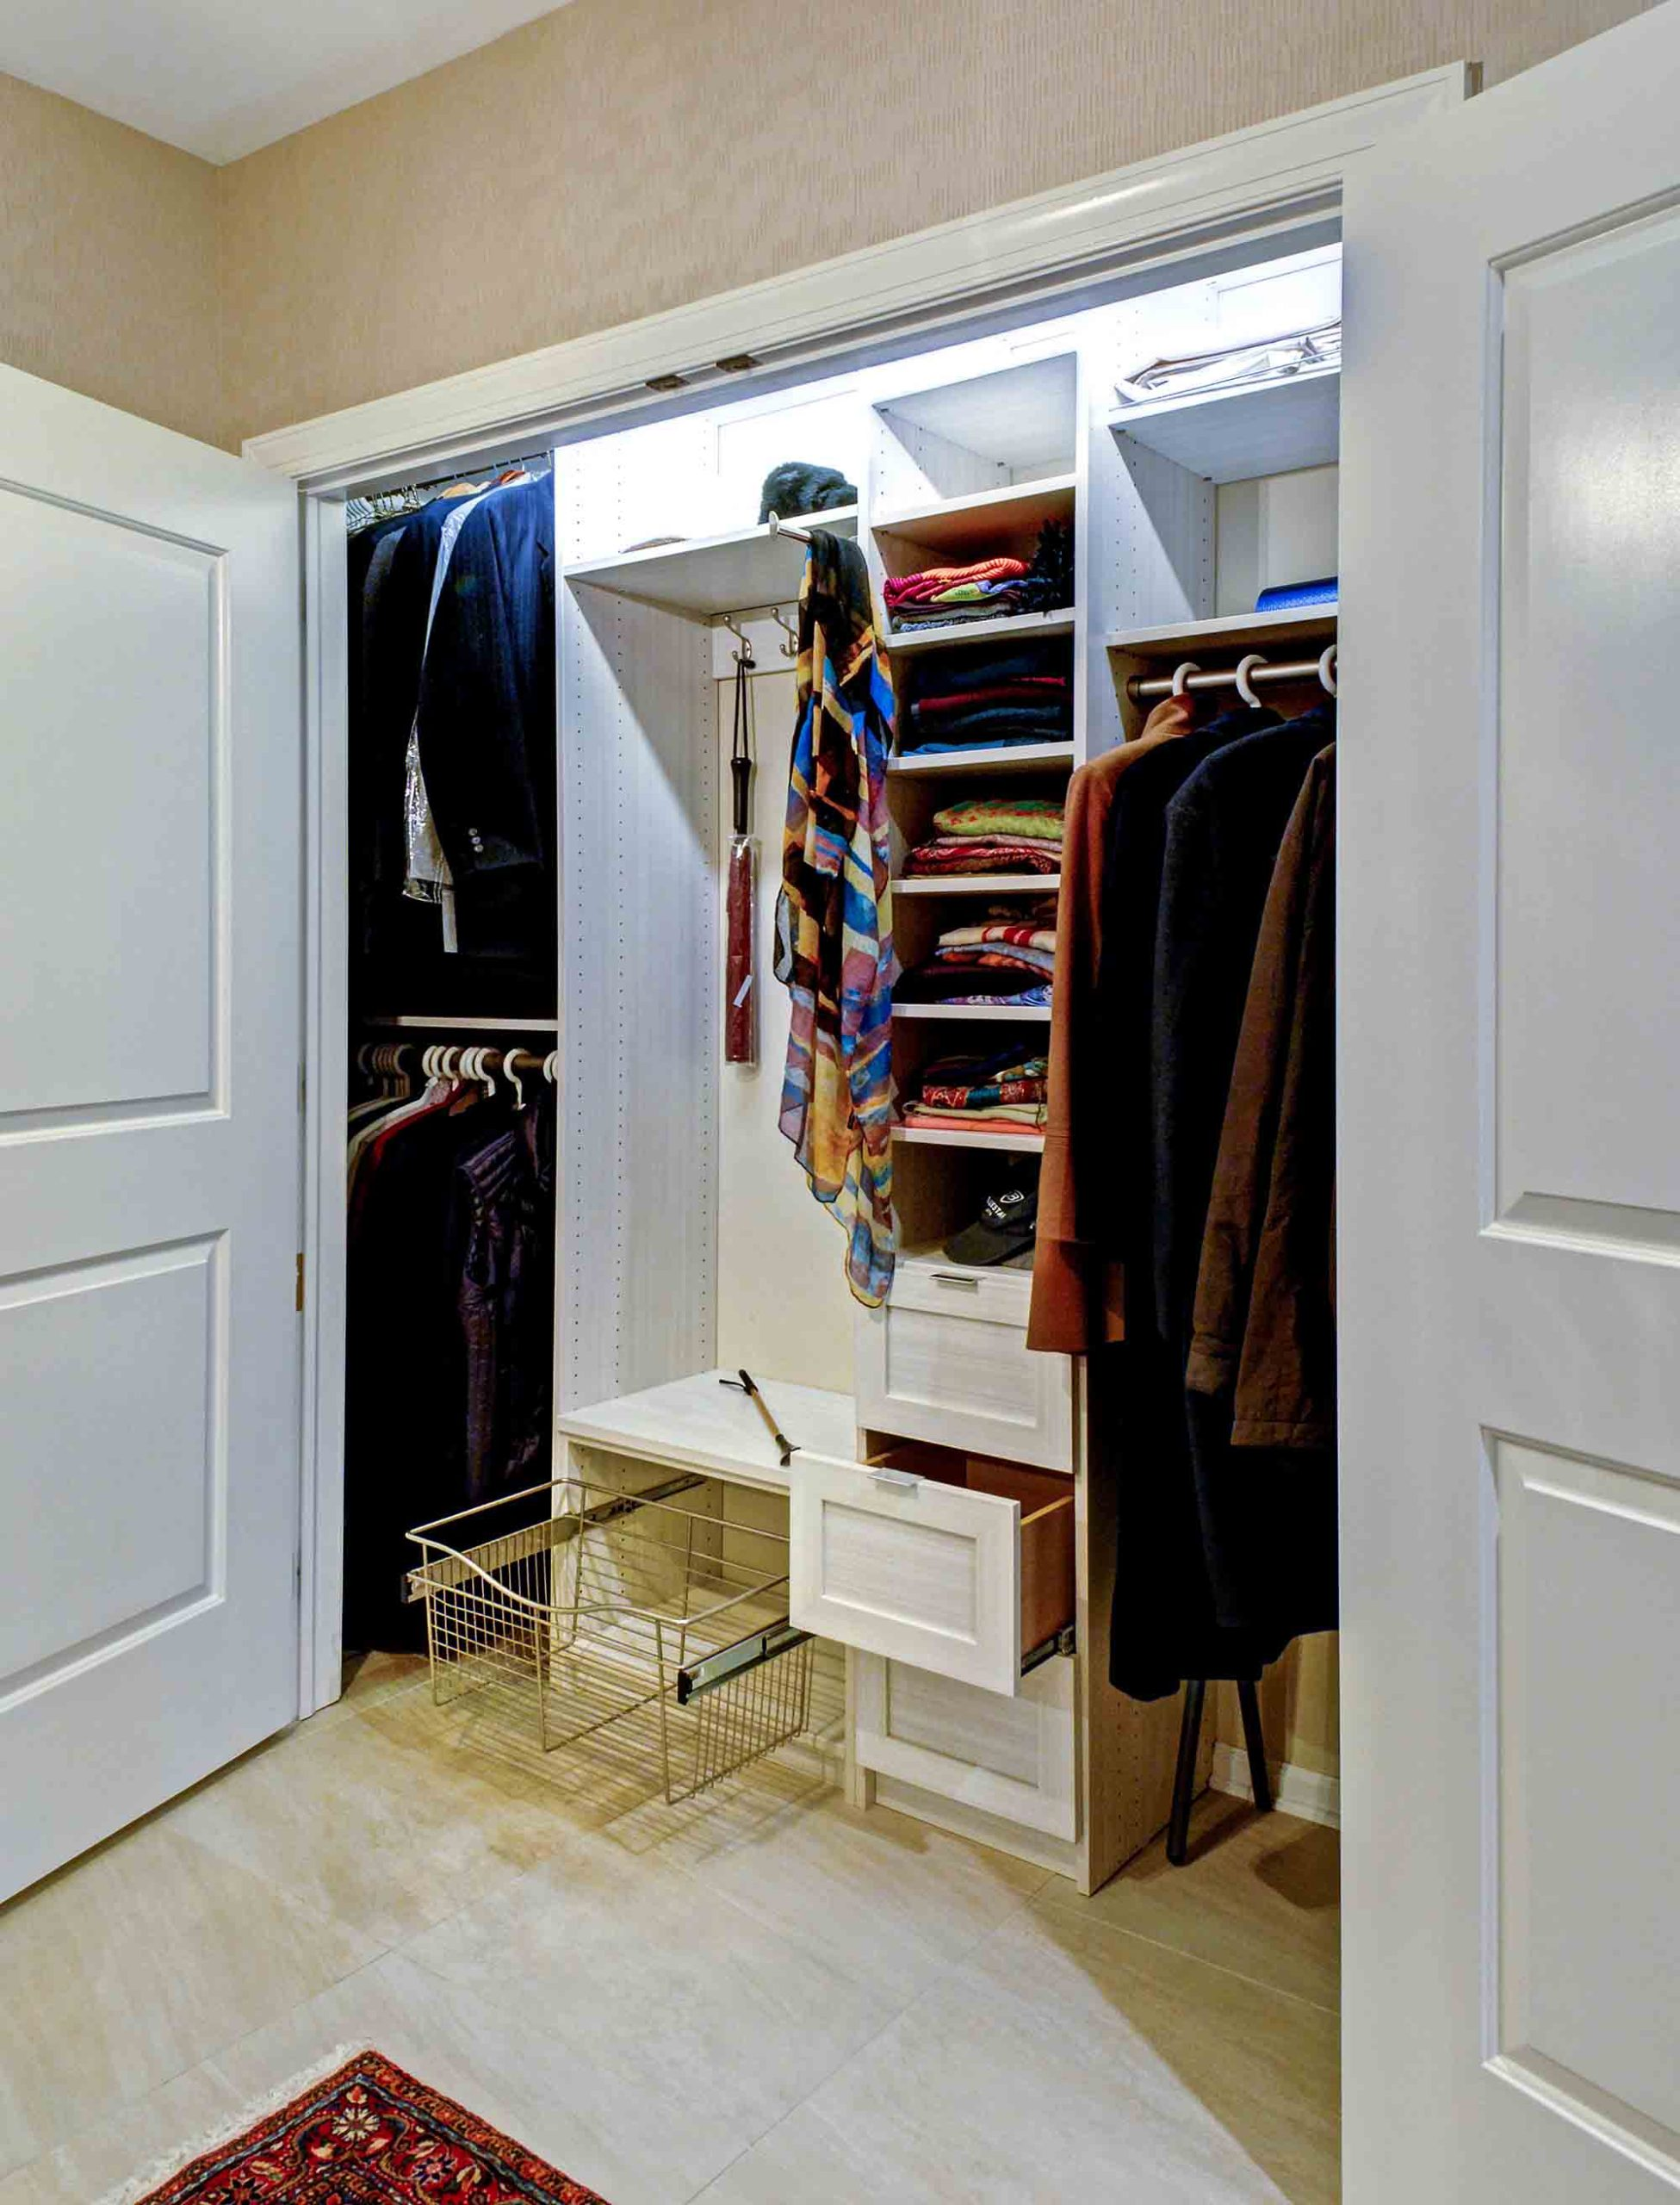 Organized reach in closet with space maximized